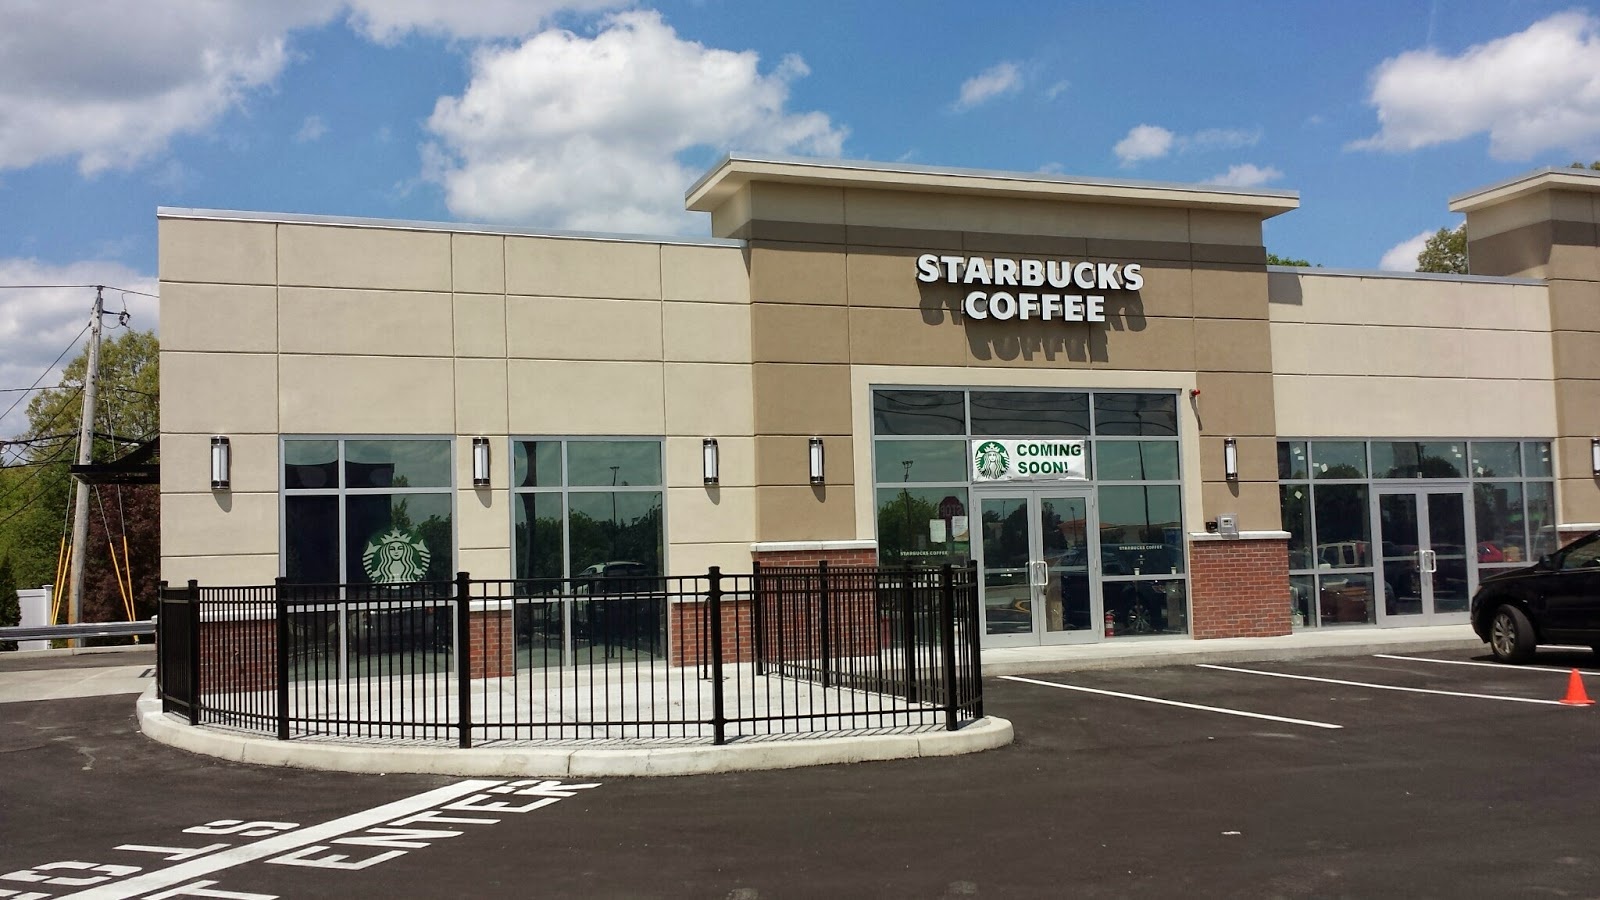 franklin matters reporting by walking around part photo essay starbucks is not yet open in its new location